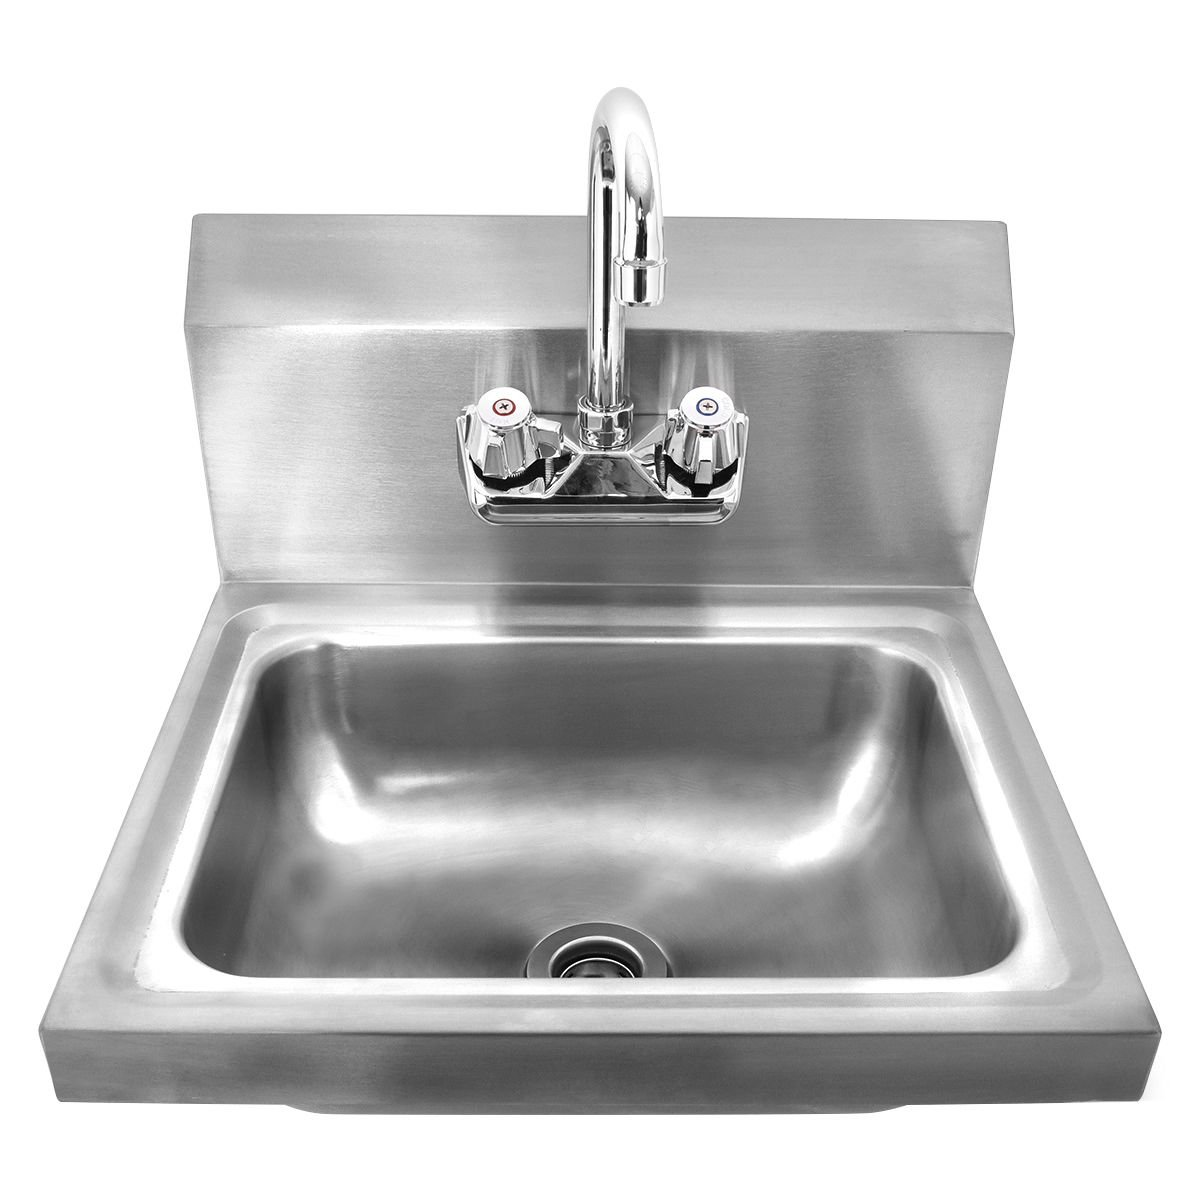 Giantex Stainless Steel Hand Wash Sink Wall Mount Commercial Kitchen Heavy Duty With Faucet by Giantex (Image #2)